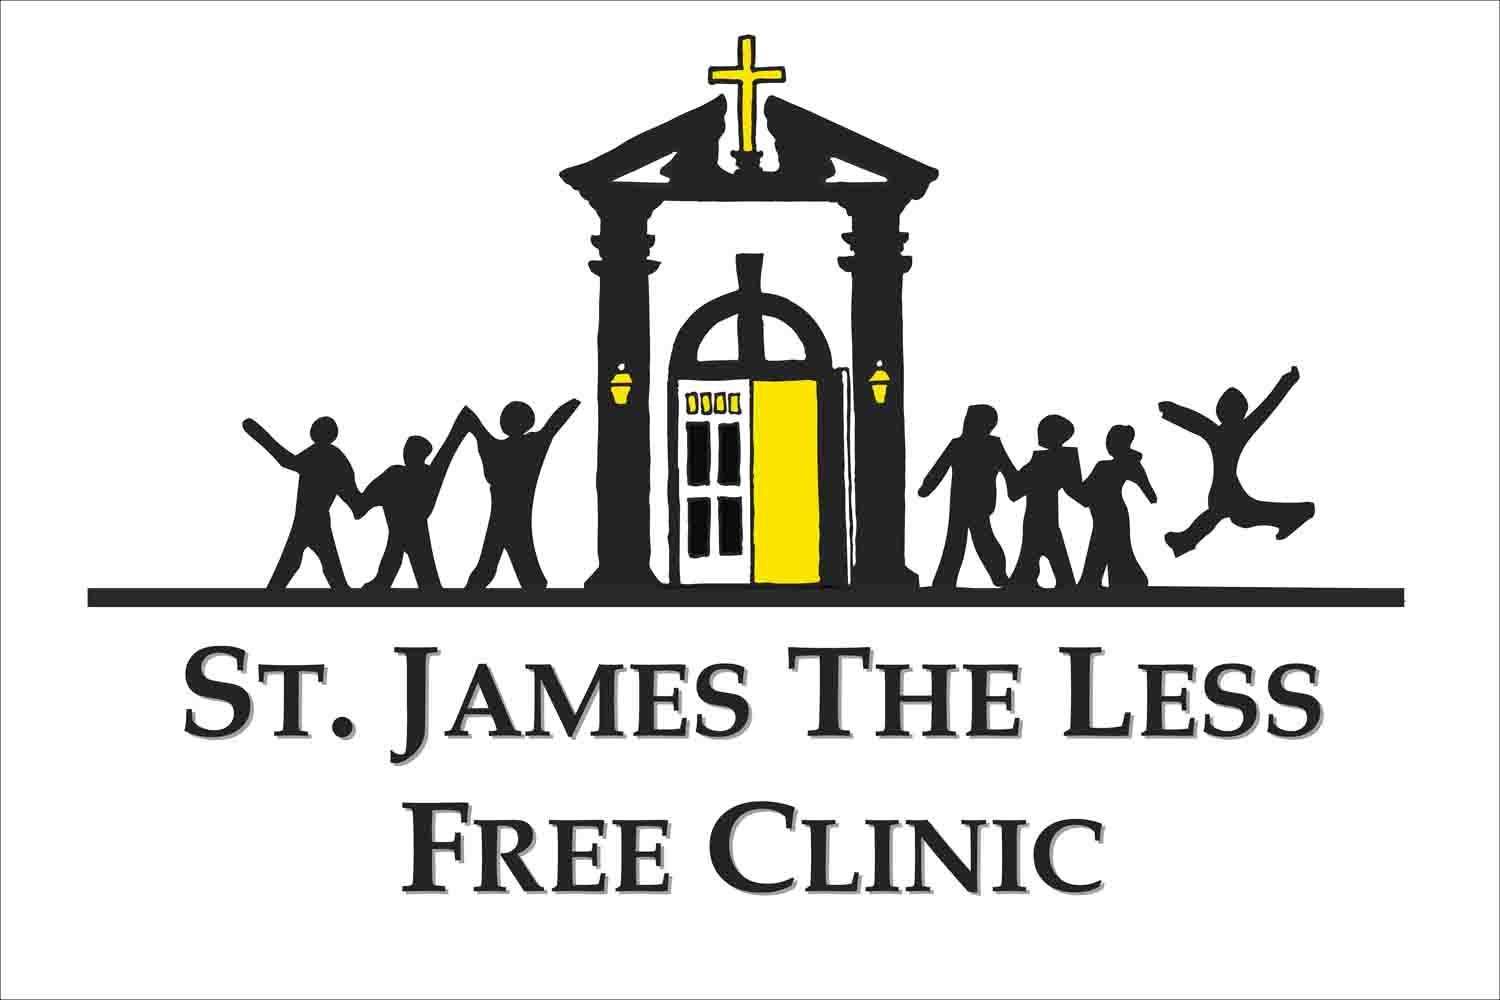 St James The Less Free Clinic